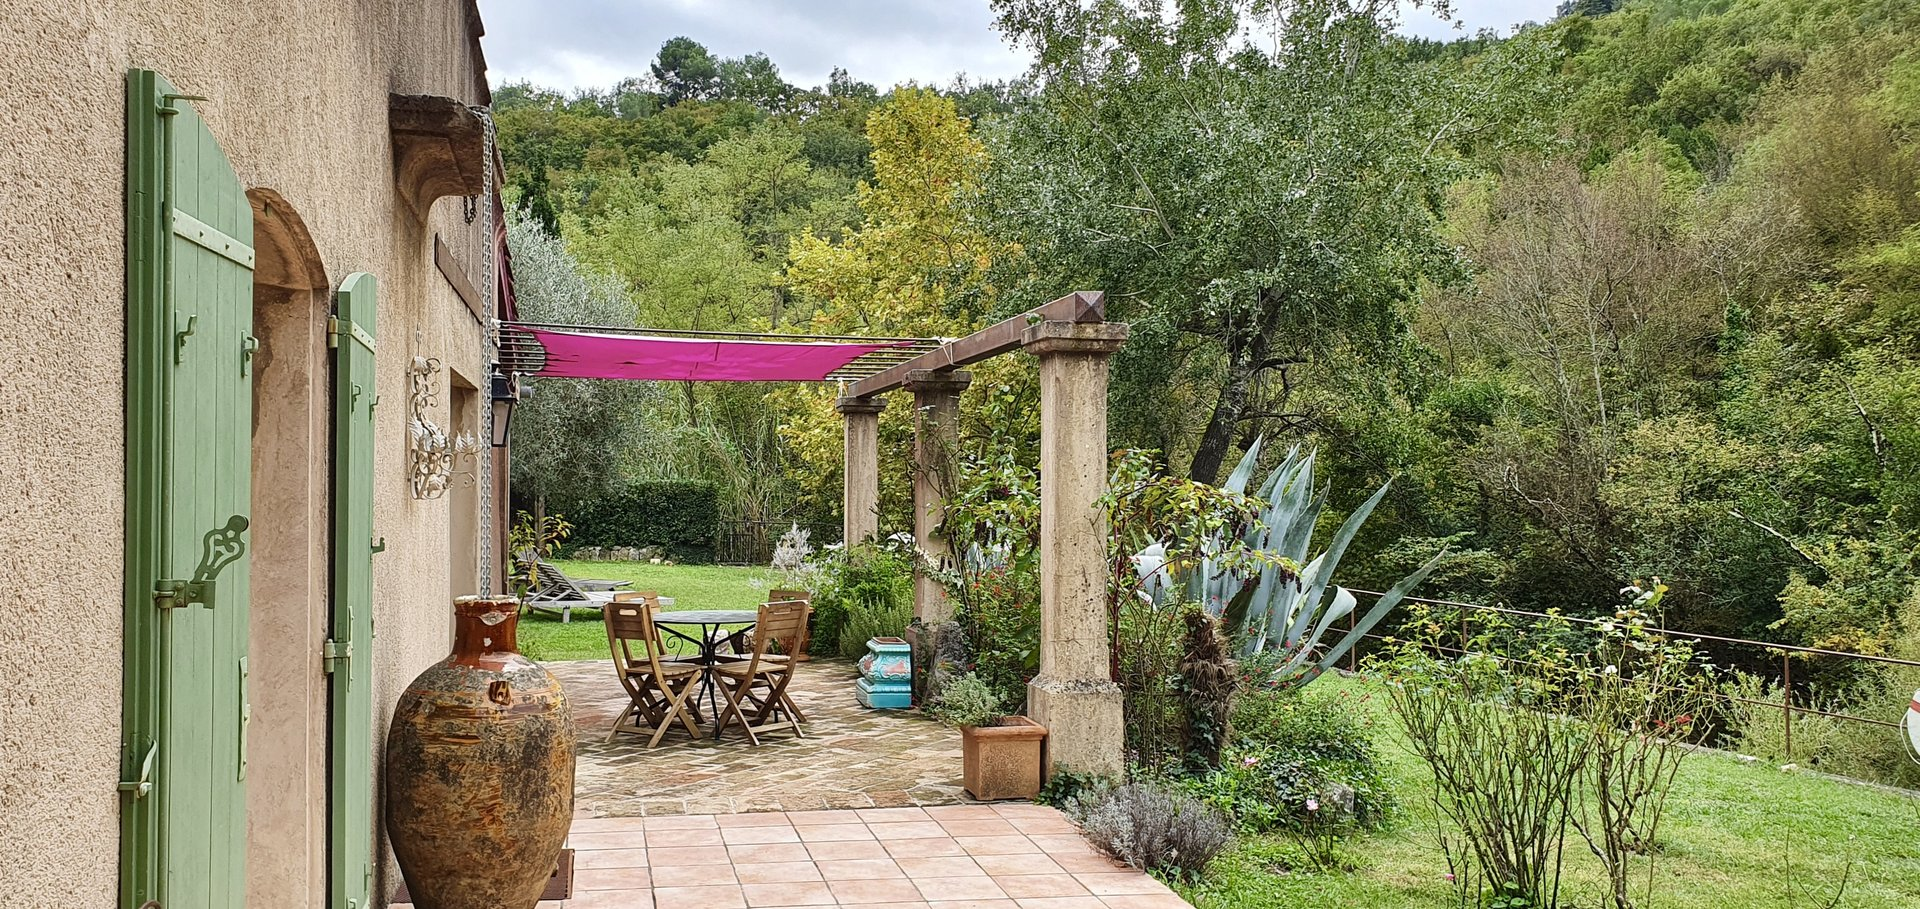 Most charming Provençale villa 30 minutes from Nice.